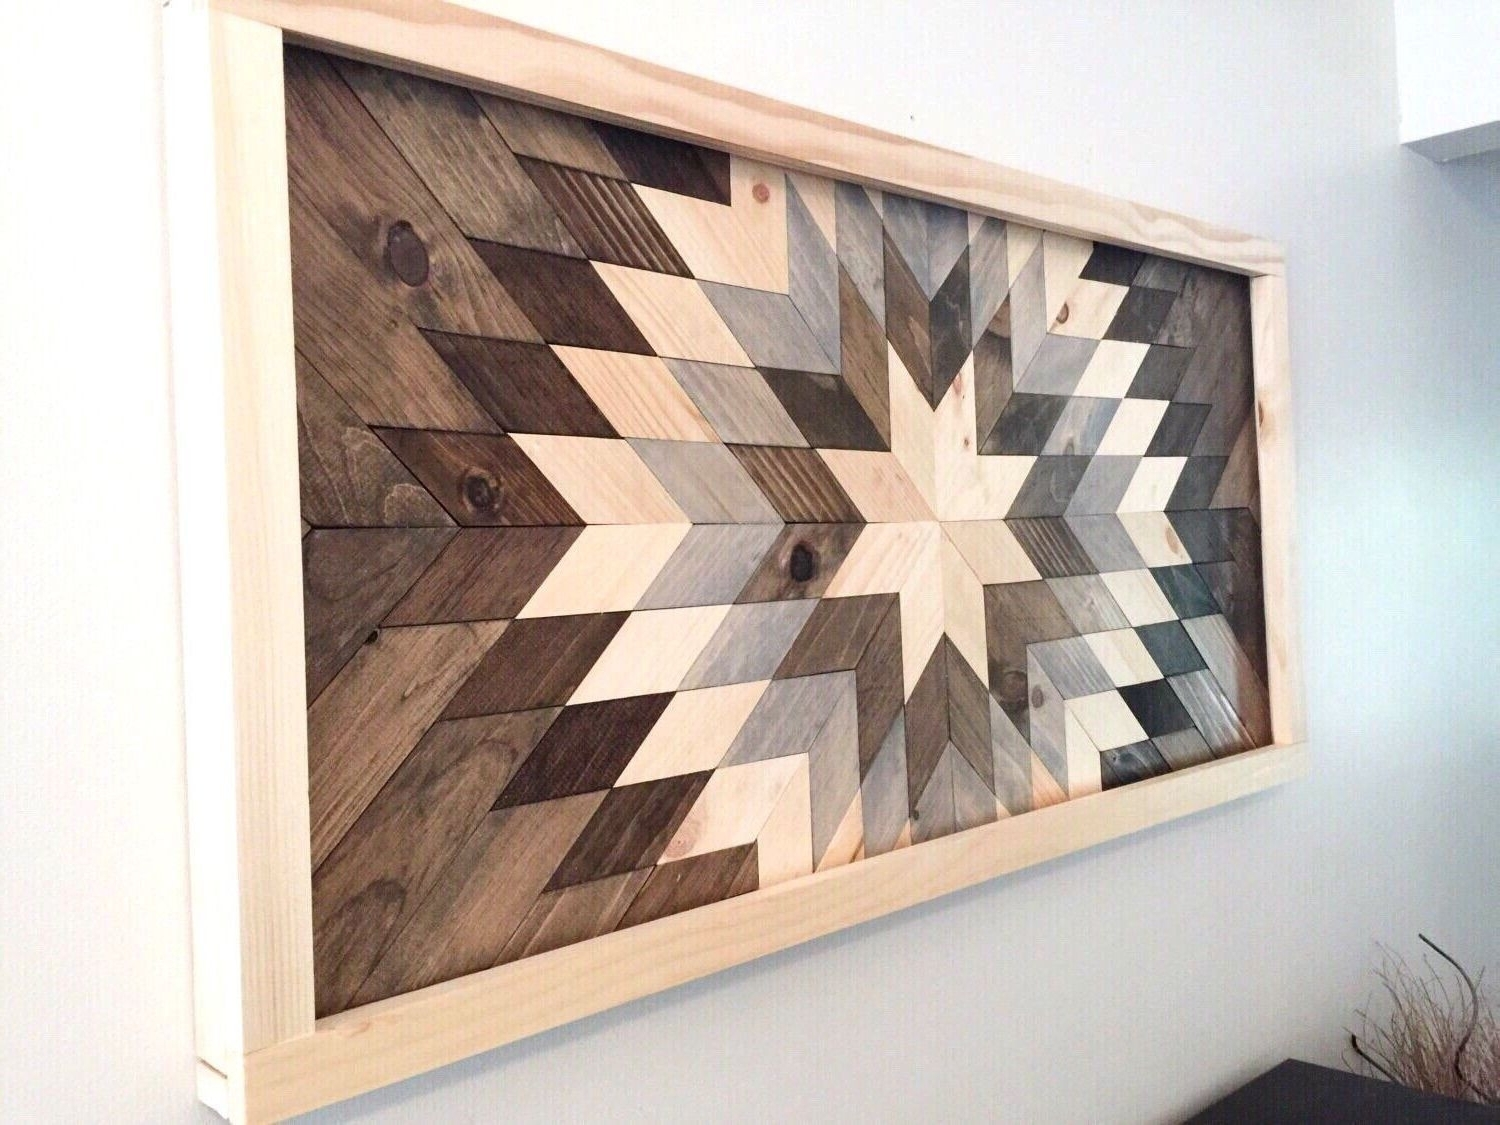 Trendy Diy Wooden Wall Art Inspiration Home Design Pinterest Inspiration Of In Wooden Wall Art (View 15 of 15)